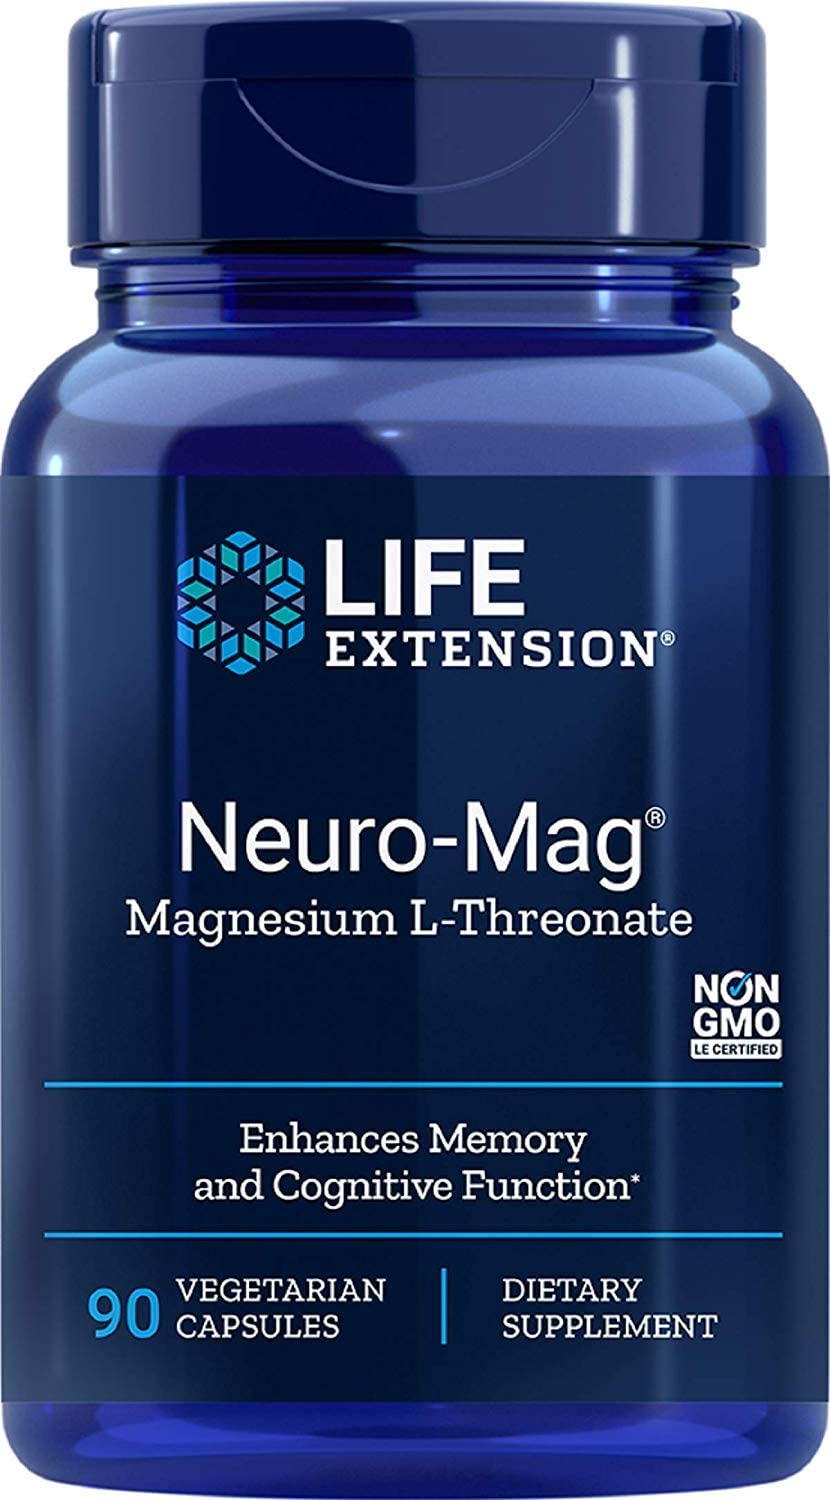 Life Extension - Neuro-Mag Supple L-Threonate Dietary Magnesium sold New life out